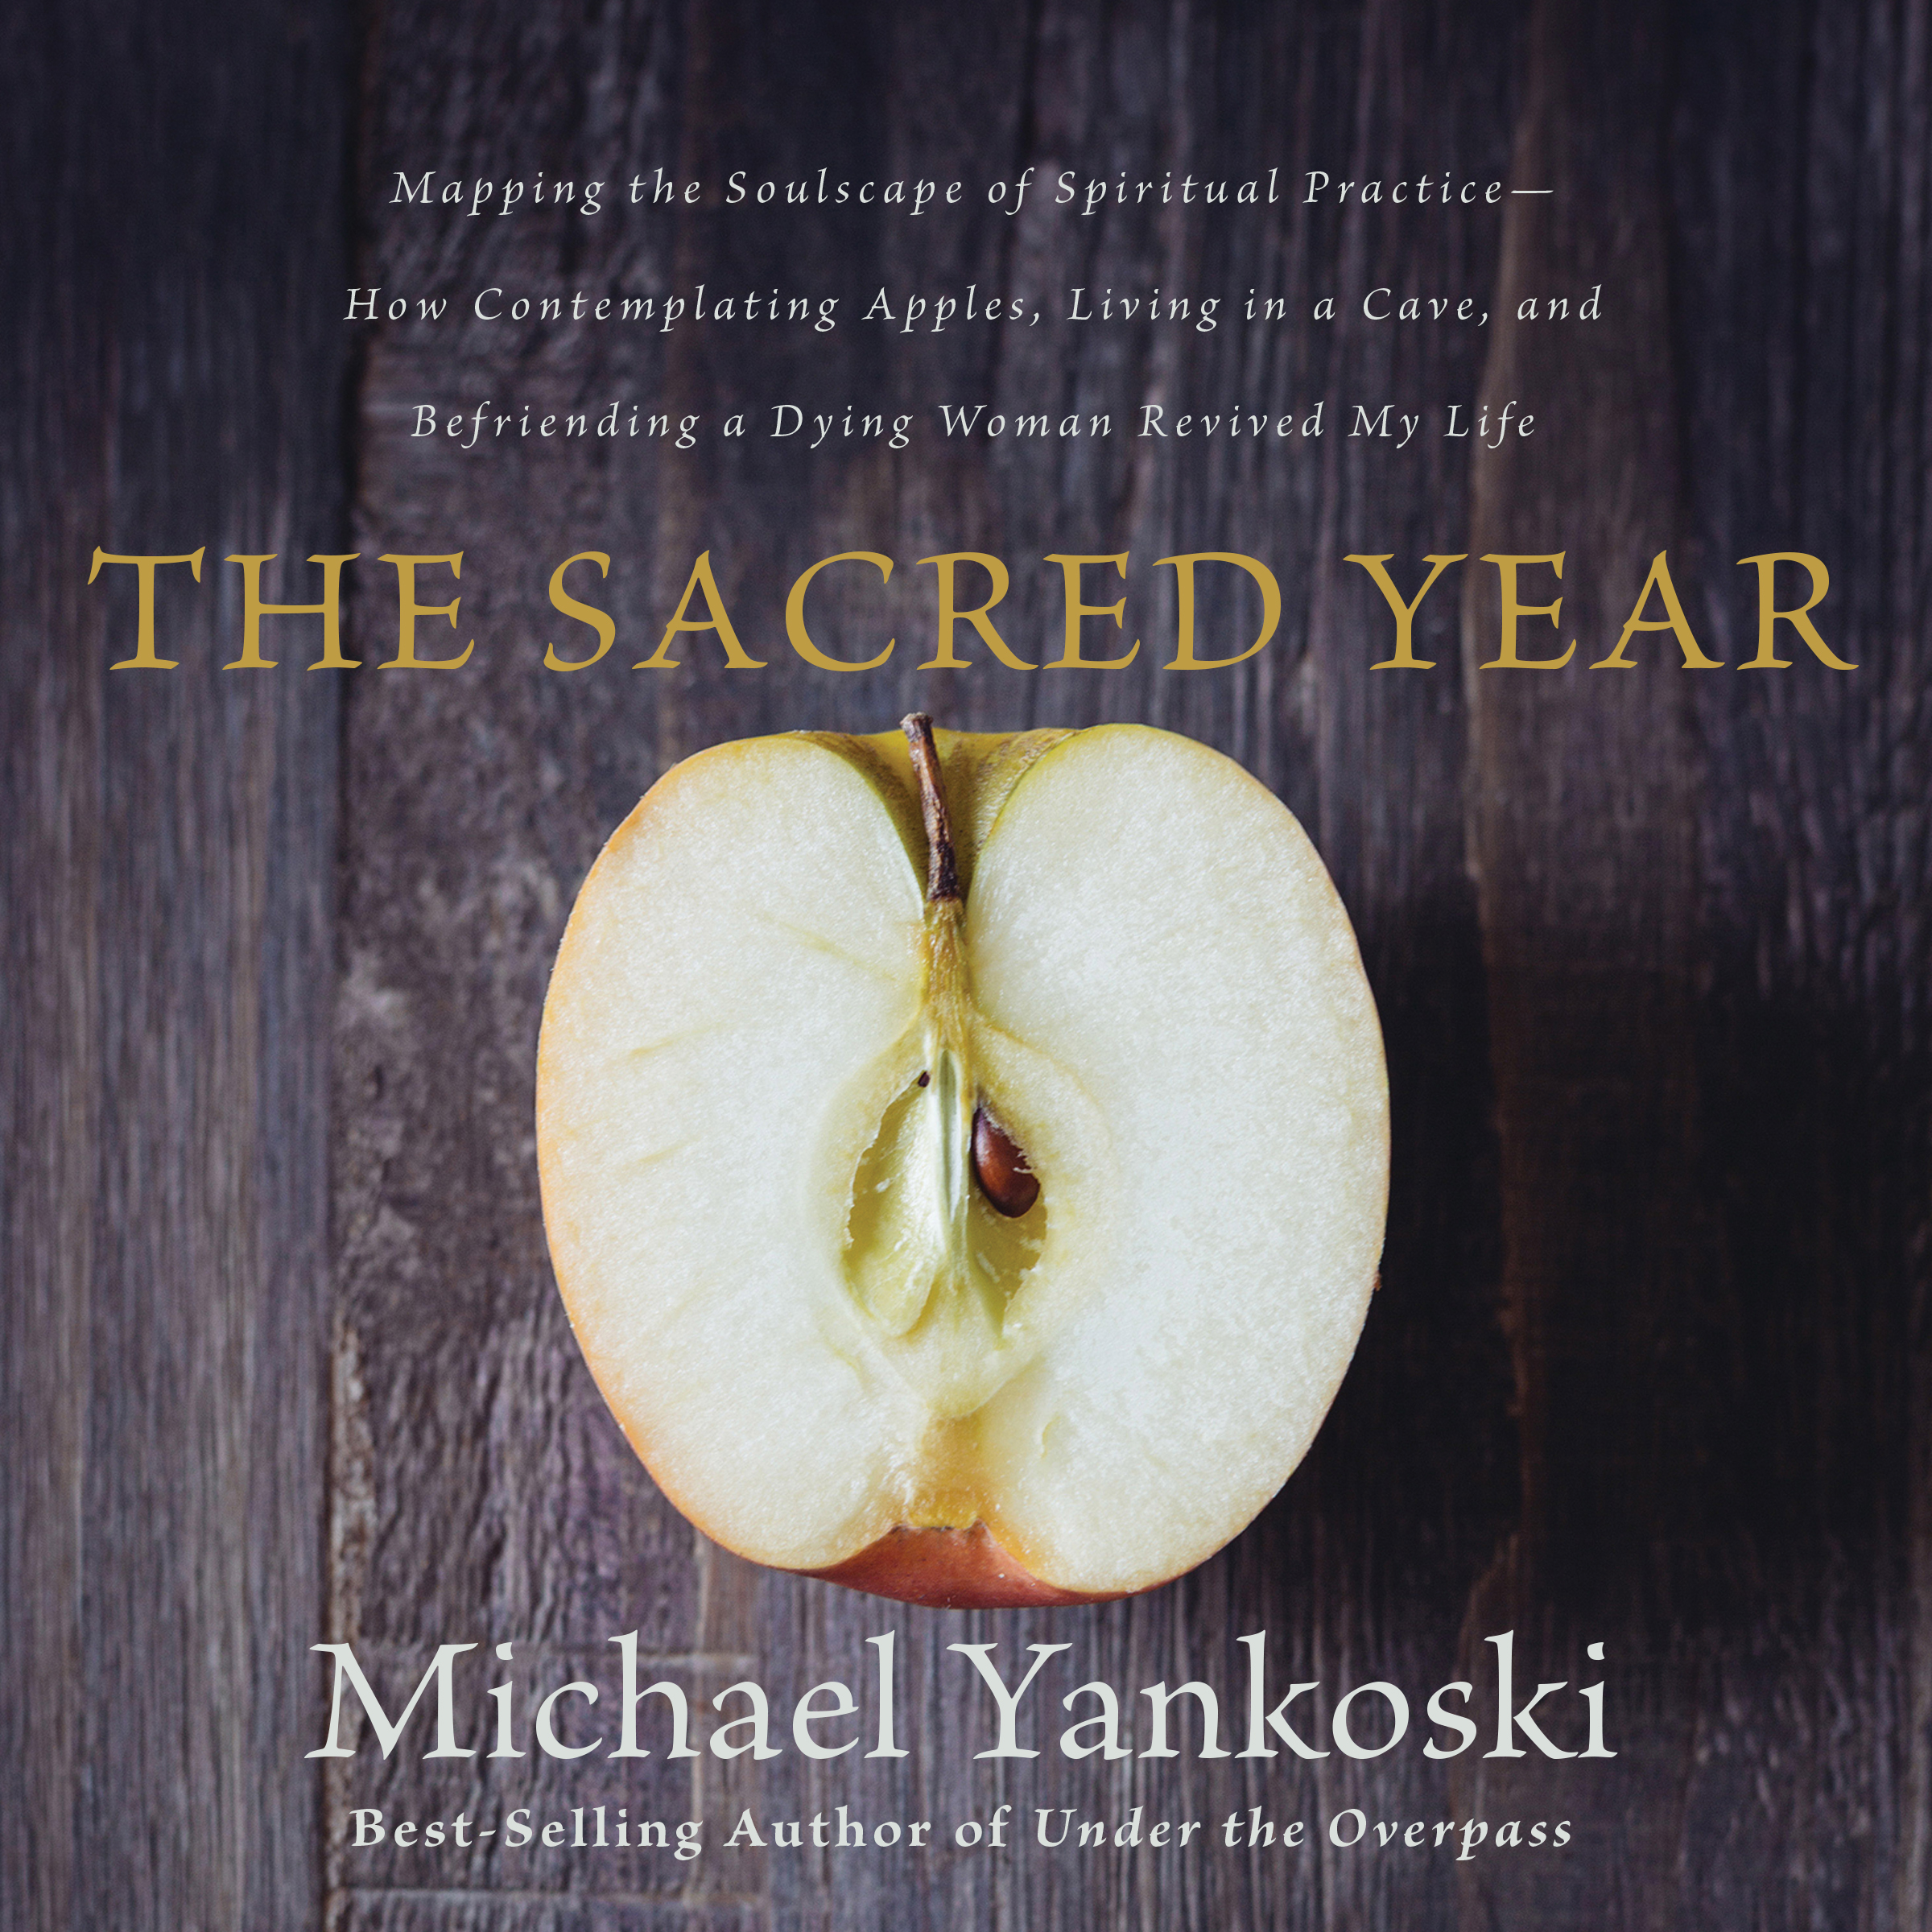 Printable The Sacred Year: Mapping the Soulscape of Spiritual Practice -- How Contemplating Apples, Living in a Cave, and Befriending a Dying Woman Revived My Life Audiobook Cover Art